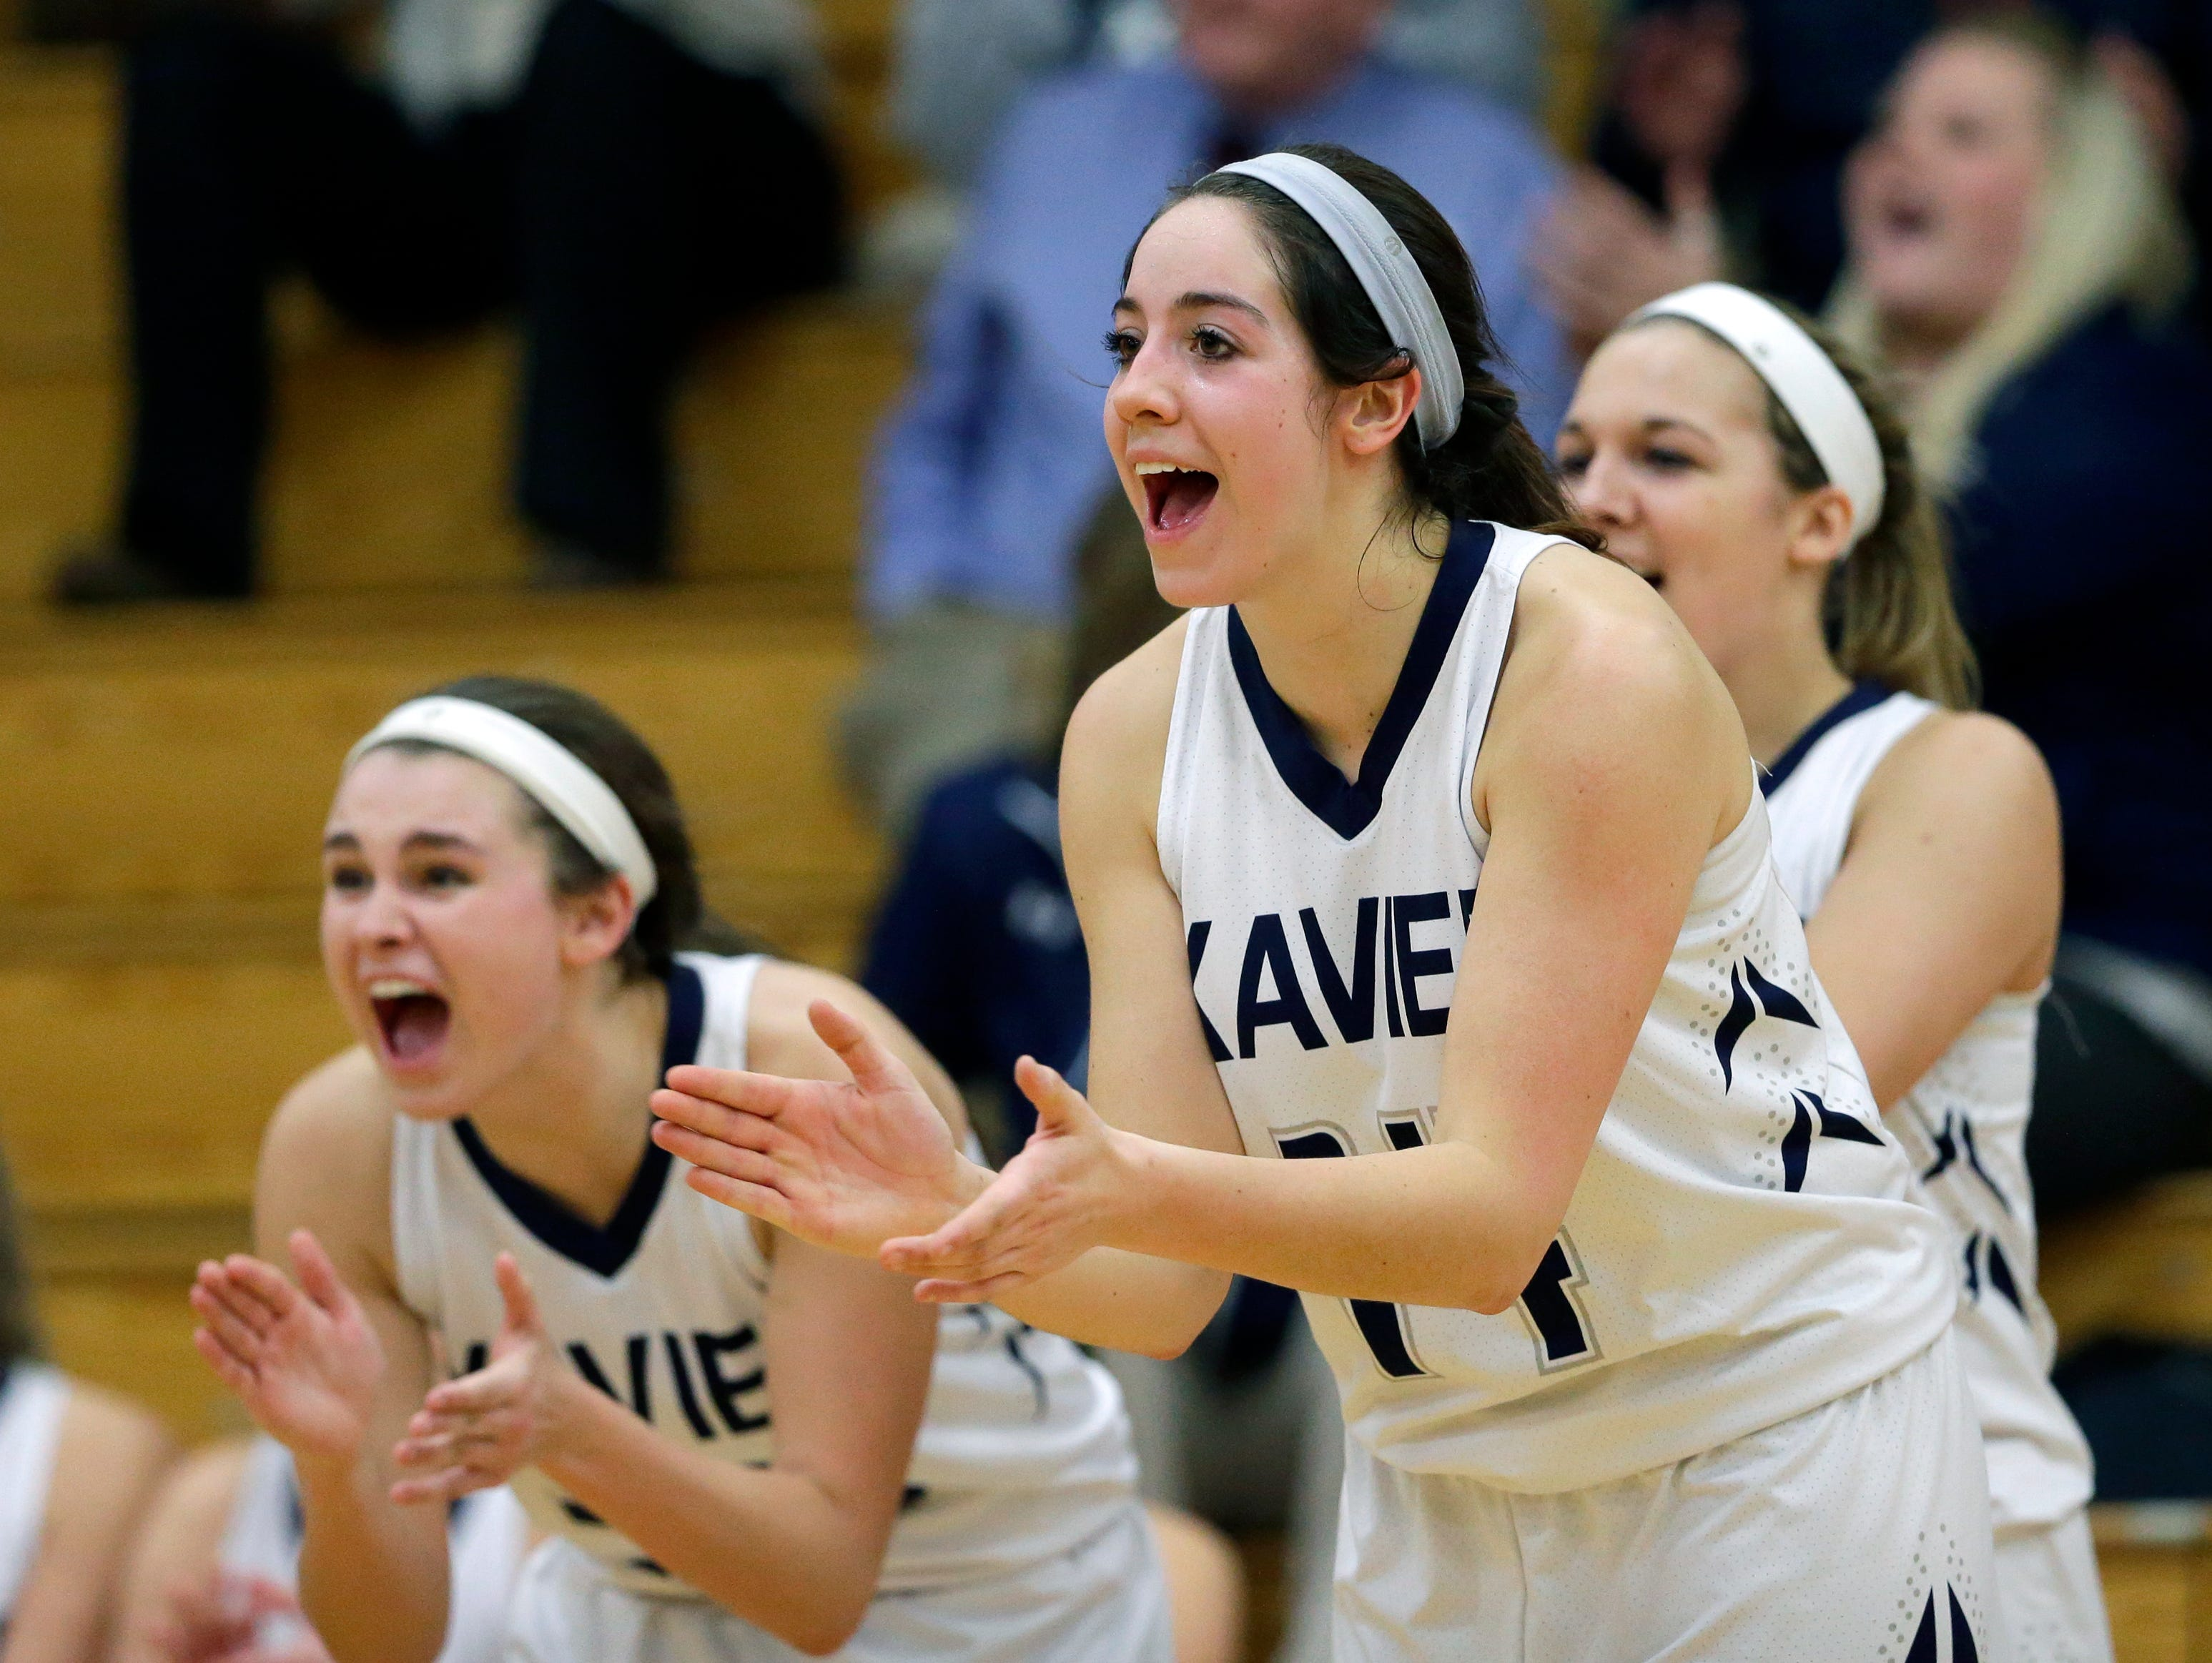 Xavier's Erin Powers (right) and others cheer for their teammates during a comeback run against Seymour in a Bay Conference girls' basketball game Feb. 18 in Appleton.